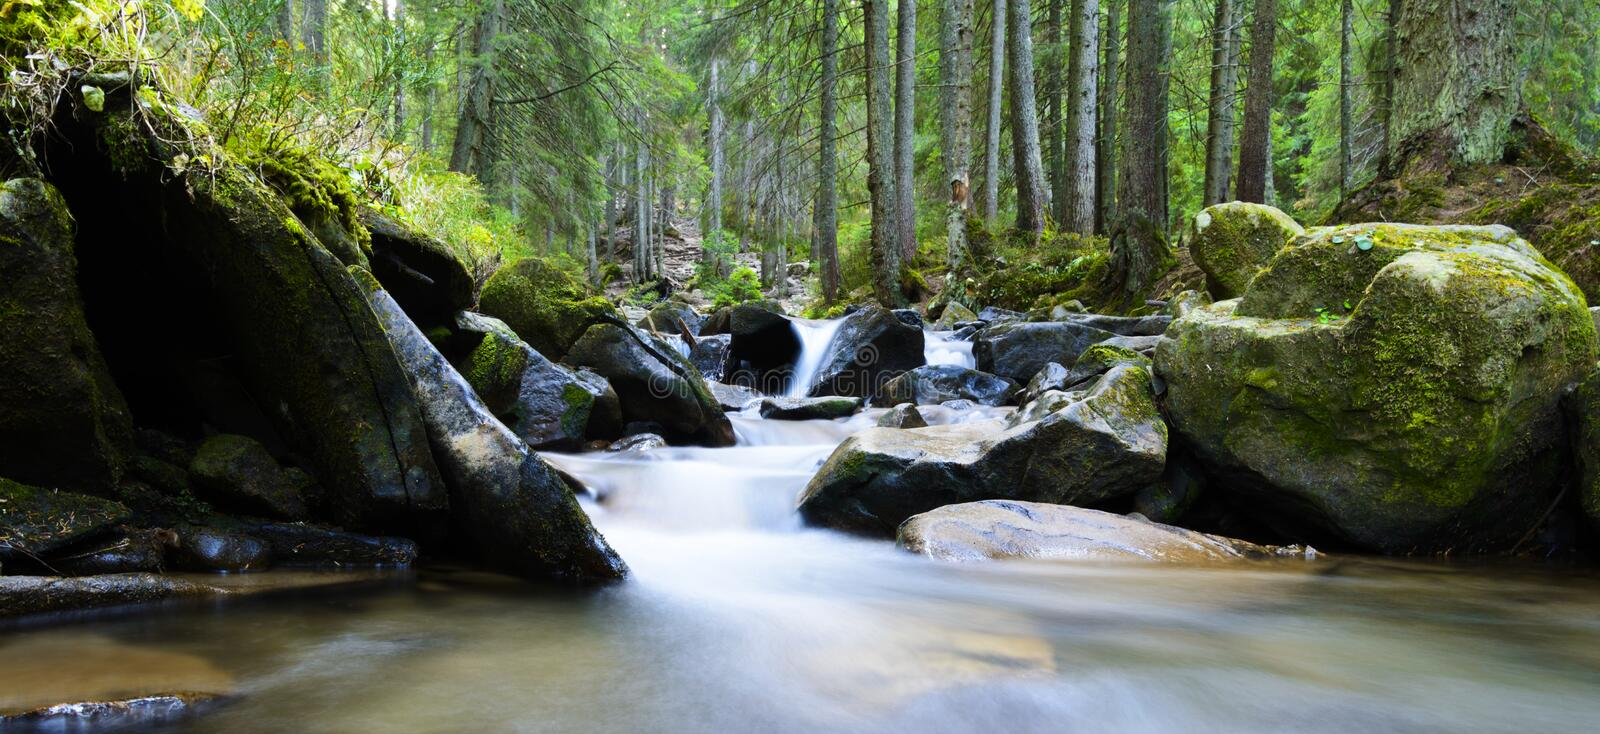 Mountain river flowing through the green forest. Stream in the wood royalty free stock image